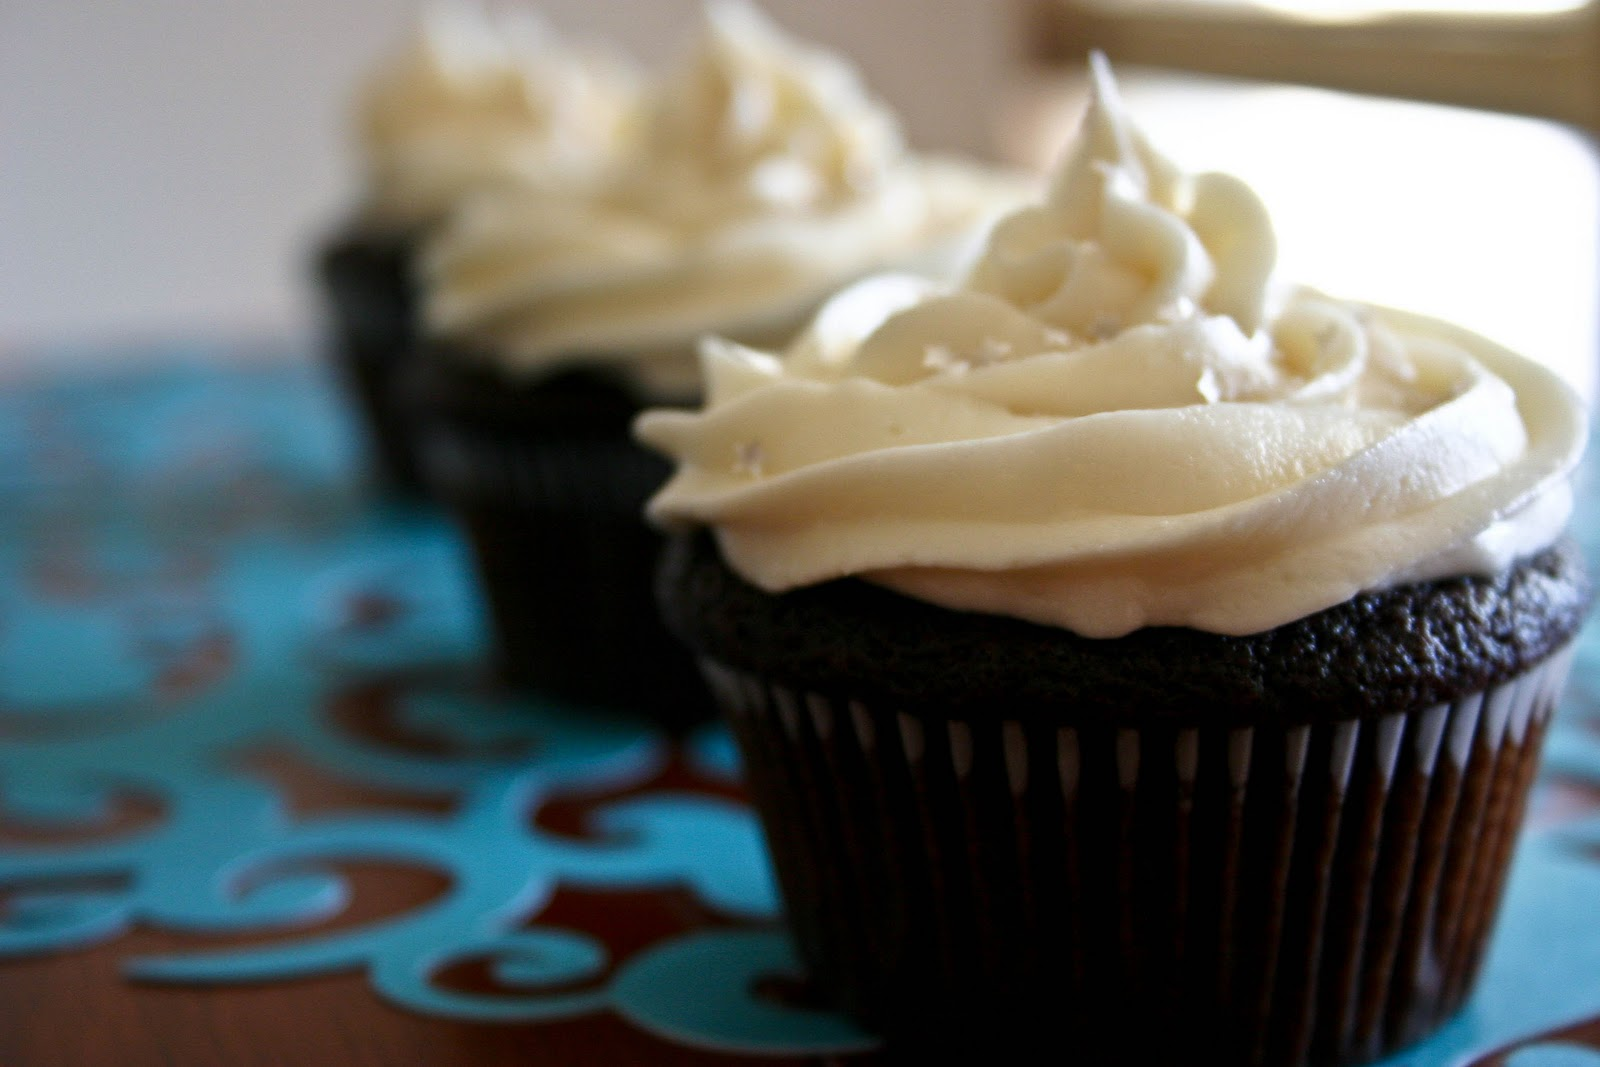 Chocolate Cupcakes with Ganache Filling Recipe